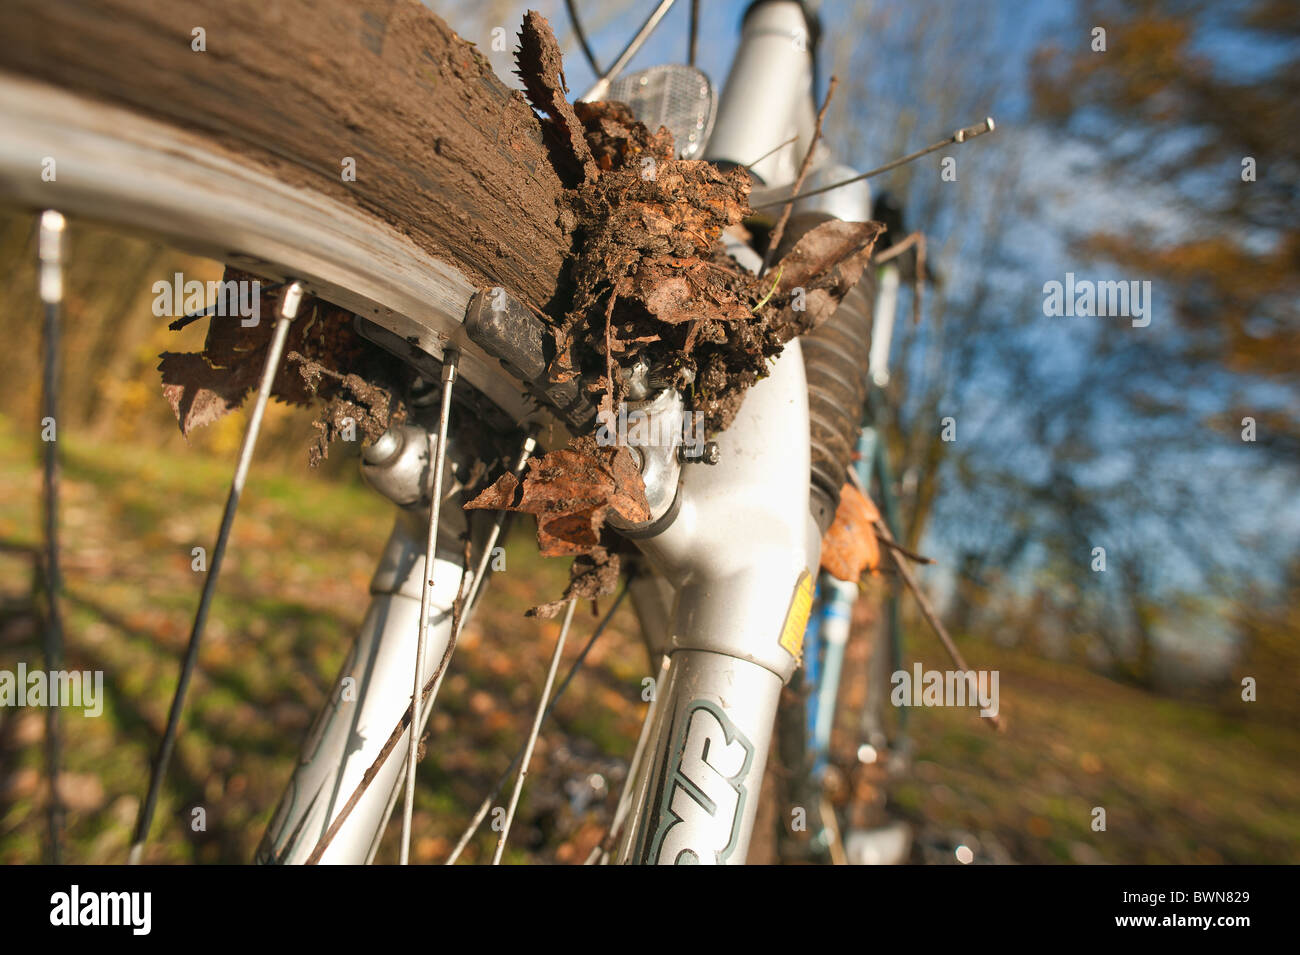 Mountain bike clogged up with mud due to leaves mud and no wheel motion leading to skids uncontrollable maneuver - Stock Image